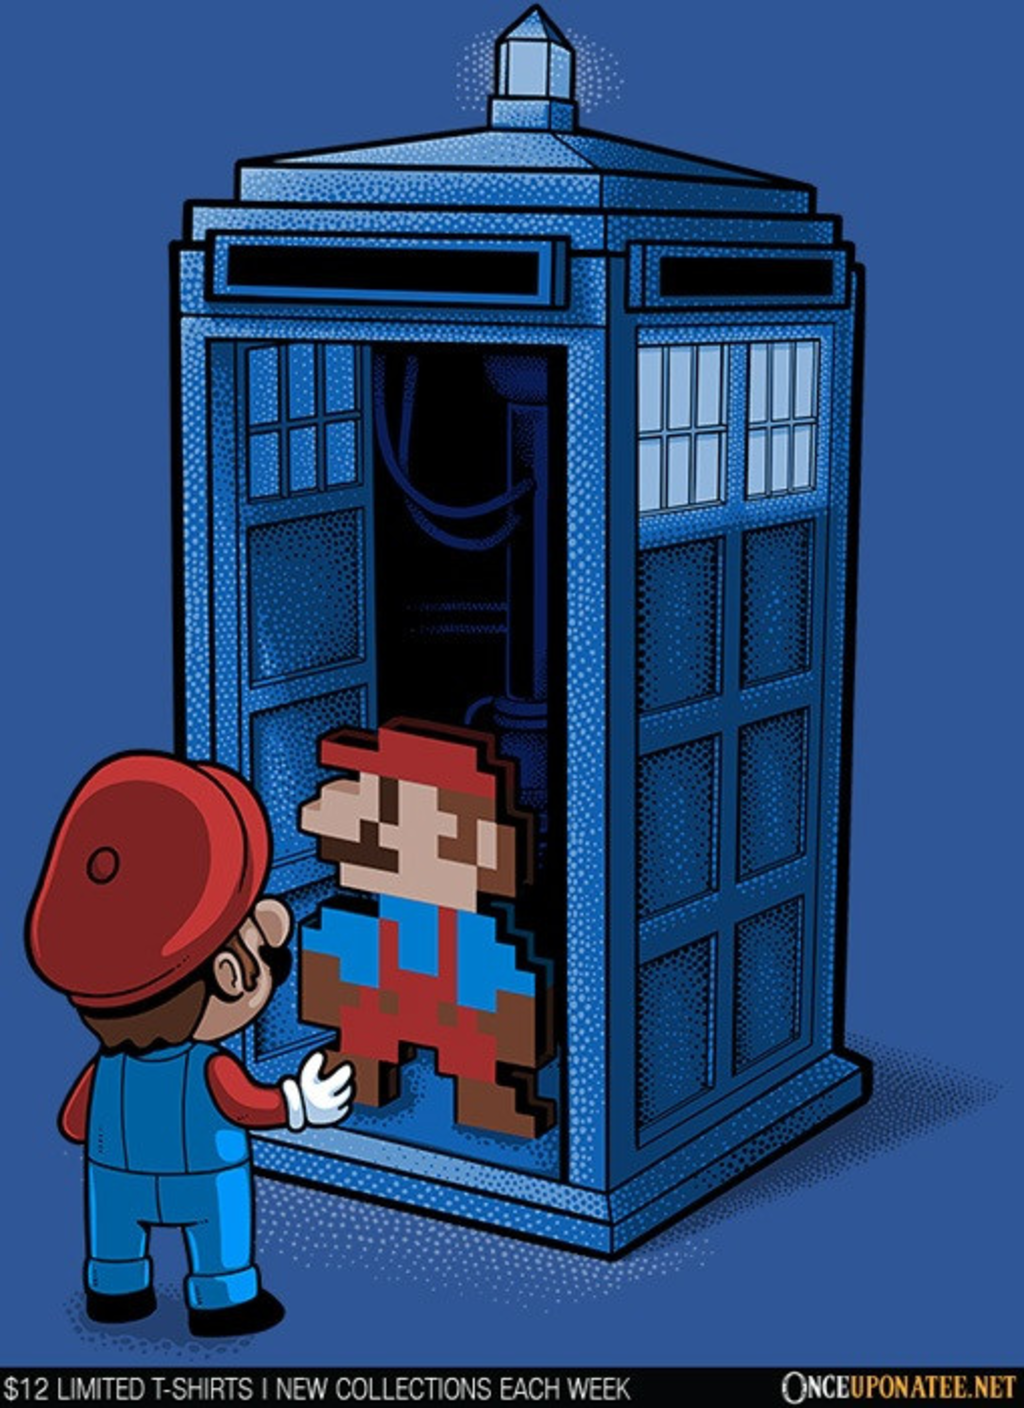 Once Upon a Tee: Back to 8-Bits